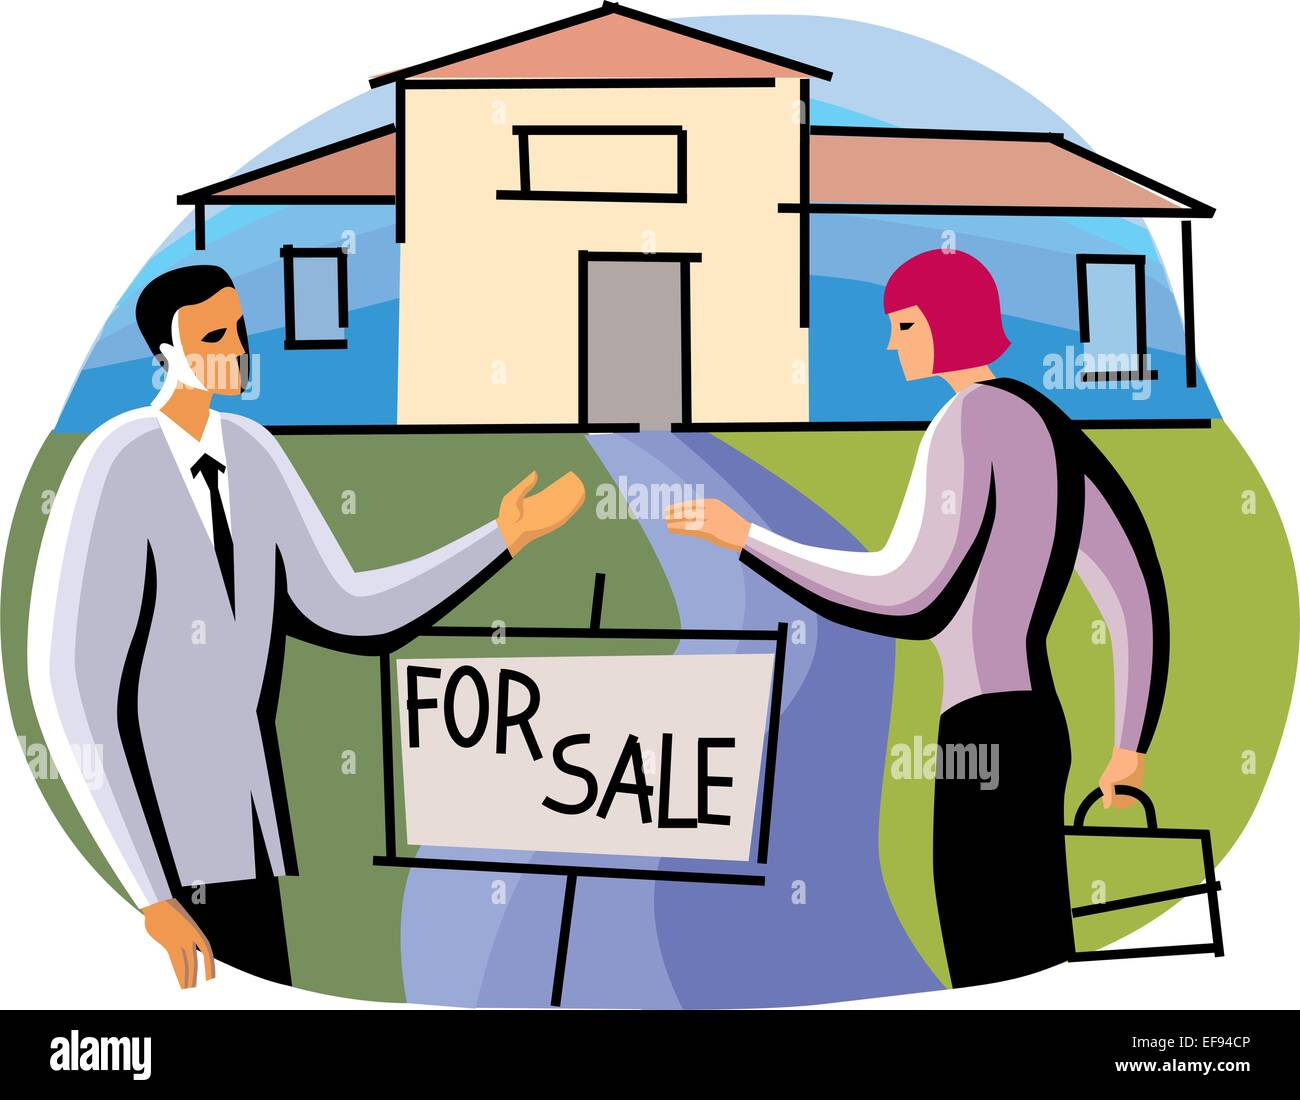 Real Estate Agents Selling House - Stock Vector